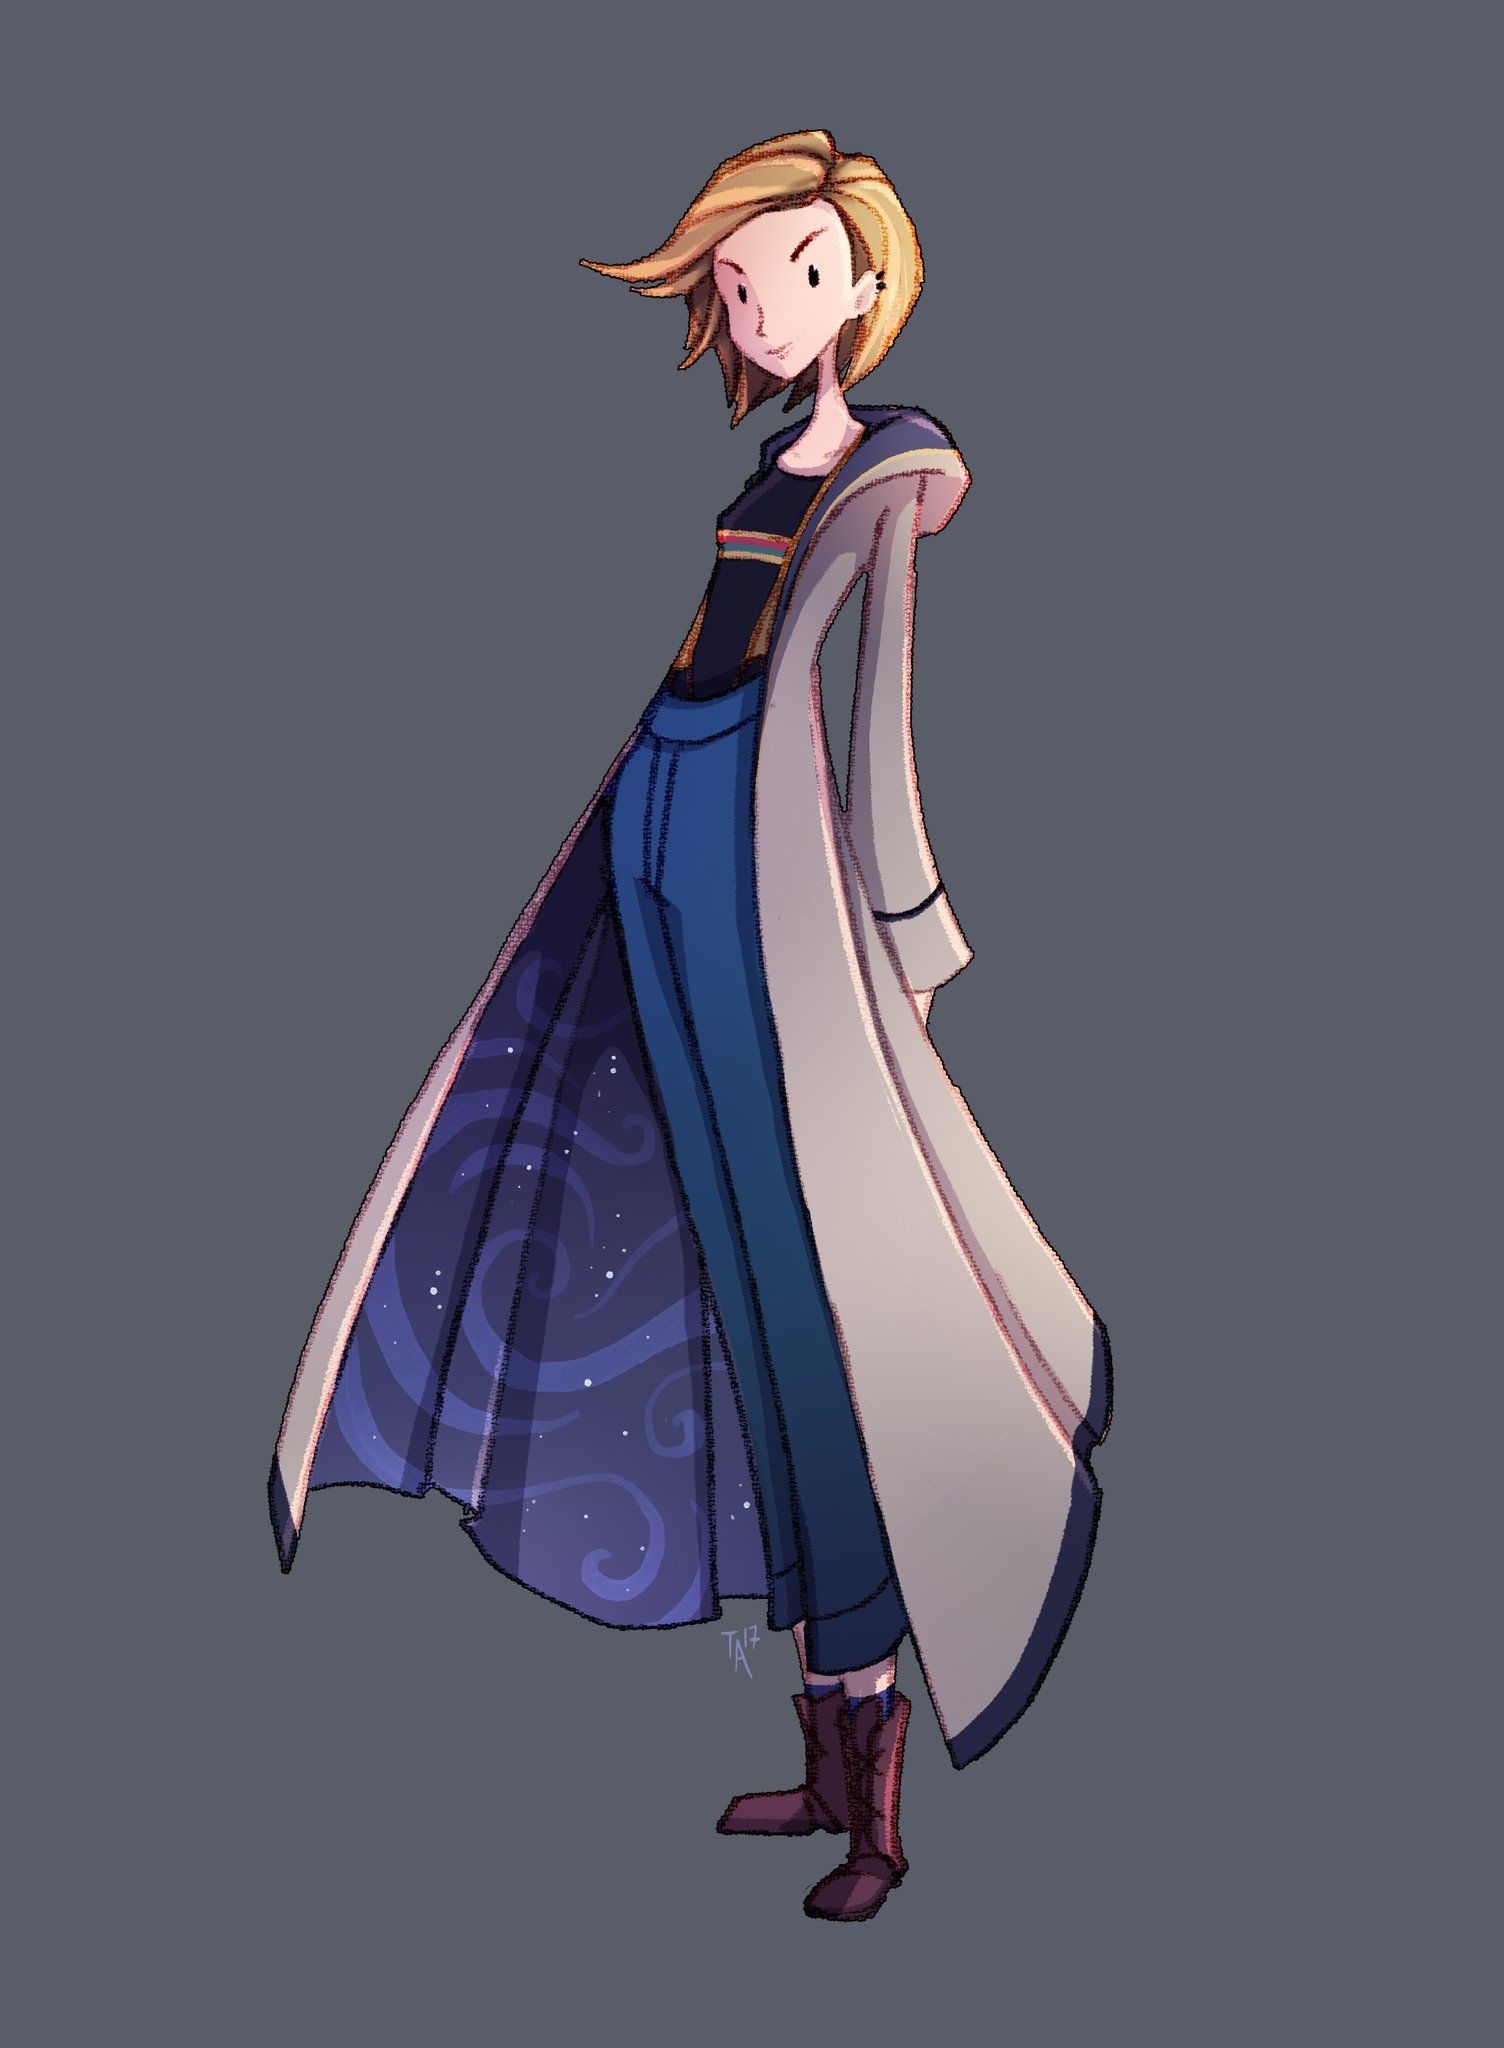 """Doctor Who Fan Art : doctor, Never, Before, Compelled, Fanart, Actress., #DoctorWho"""", Doctor"""